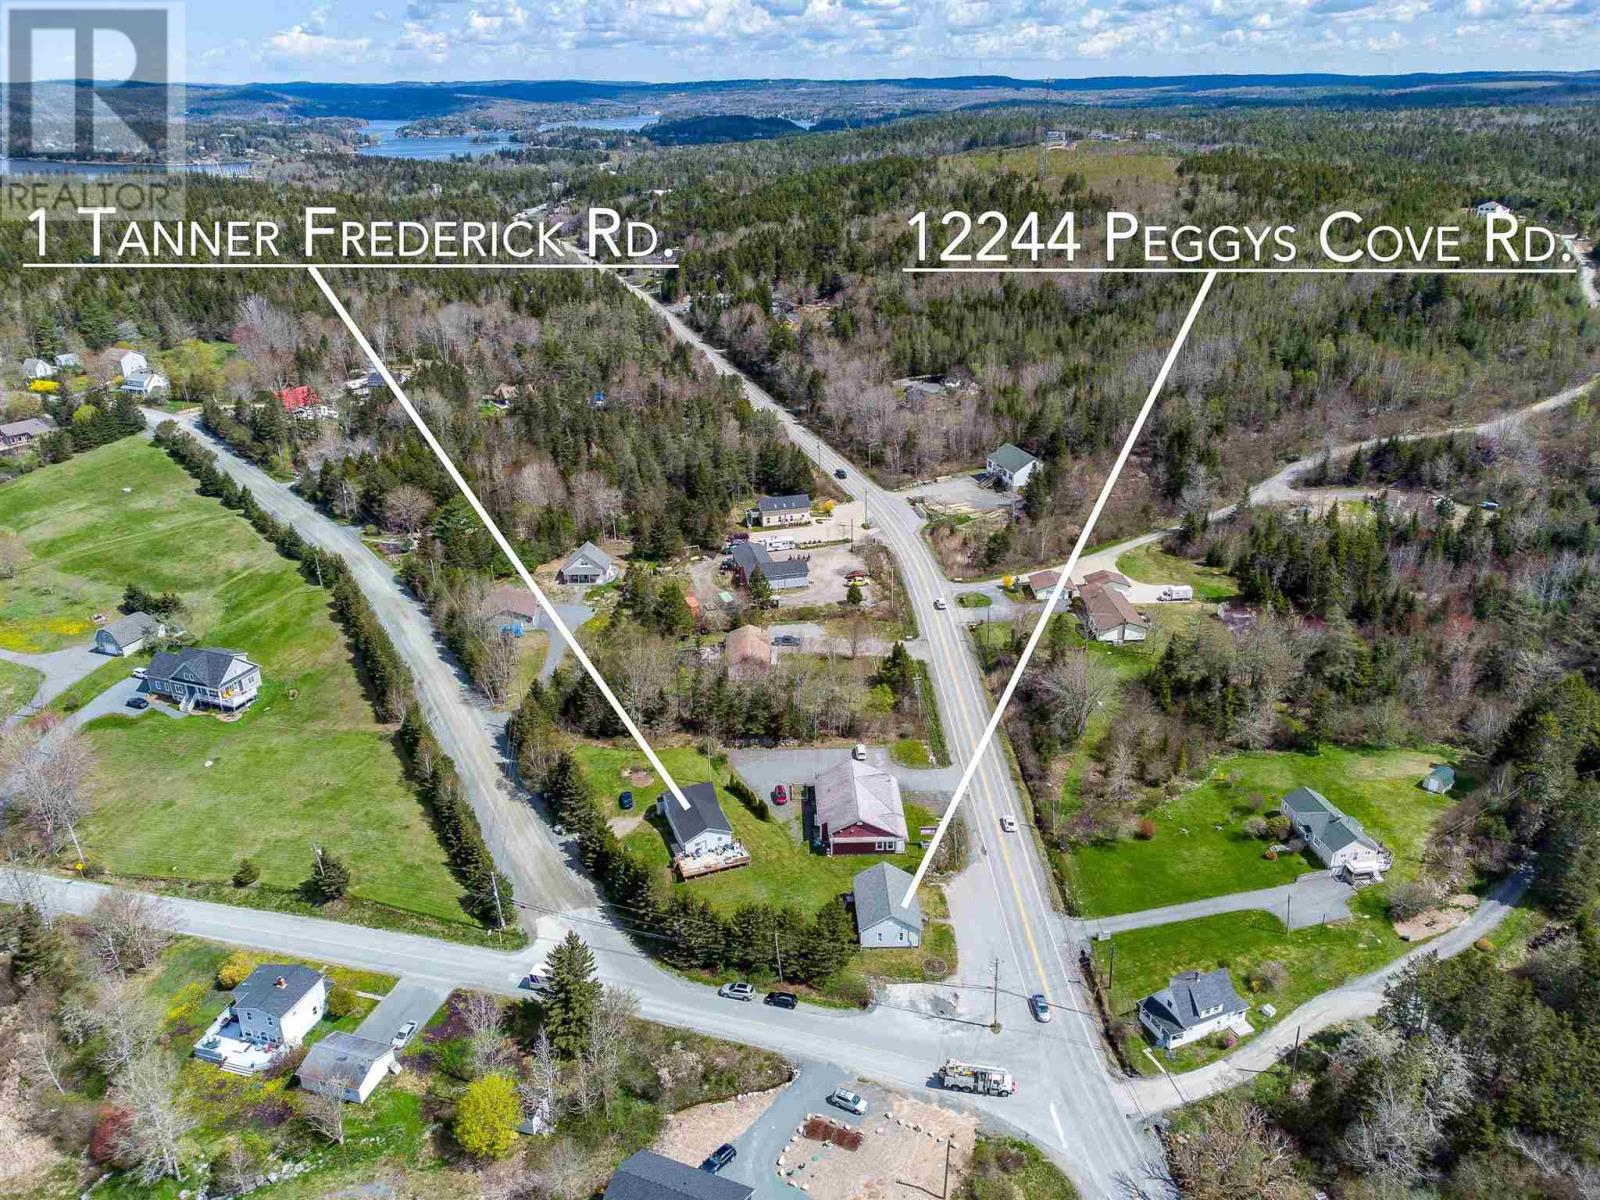 12244 Peggy's Cove Road|1 Tanner Frederick Road